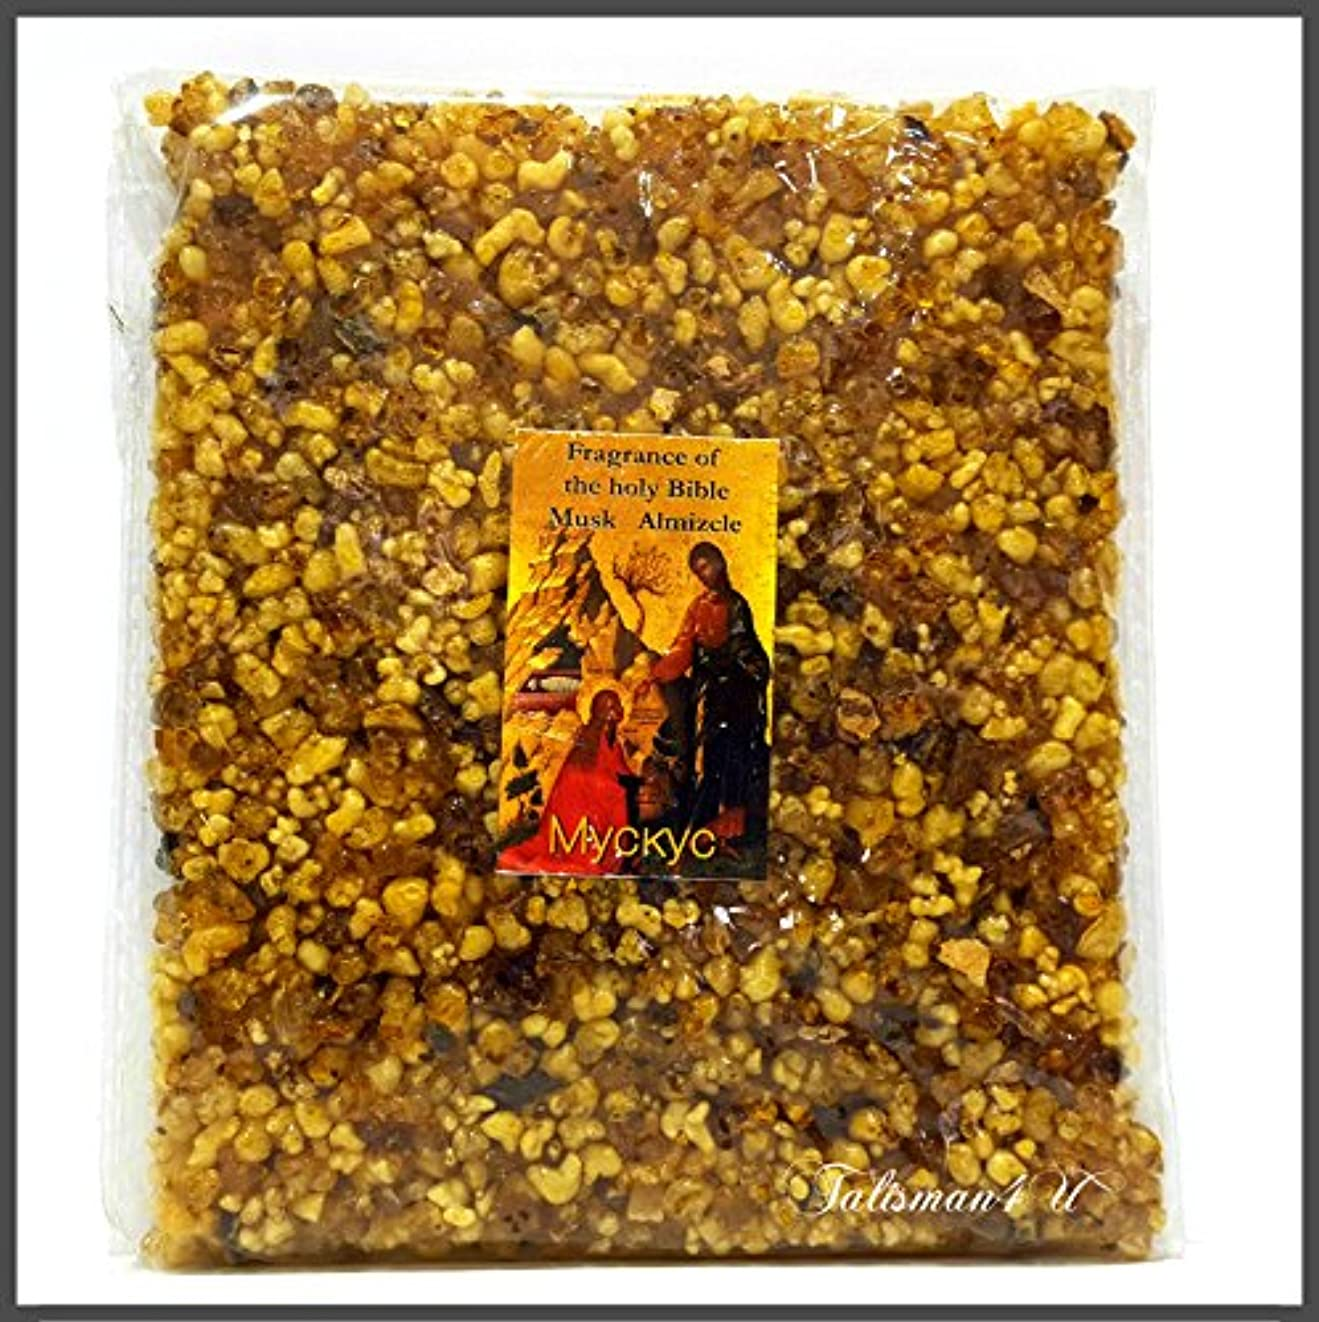 選ぶ駅サスティーンムスクエルサレムIncense樹脂Aromatic Almizcle Frankincense of the Holy Land 3.5 Oz/100 g